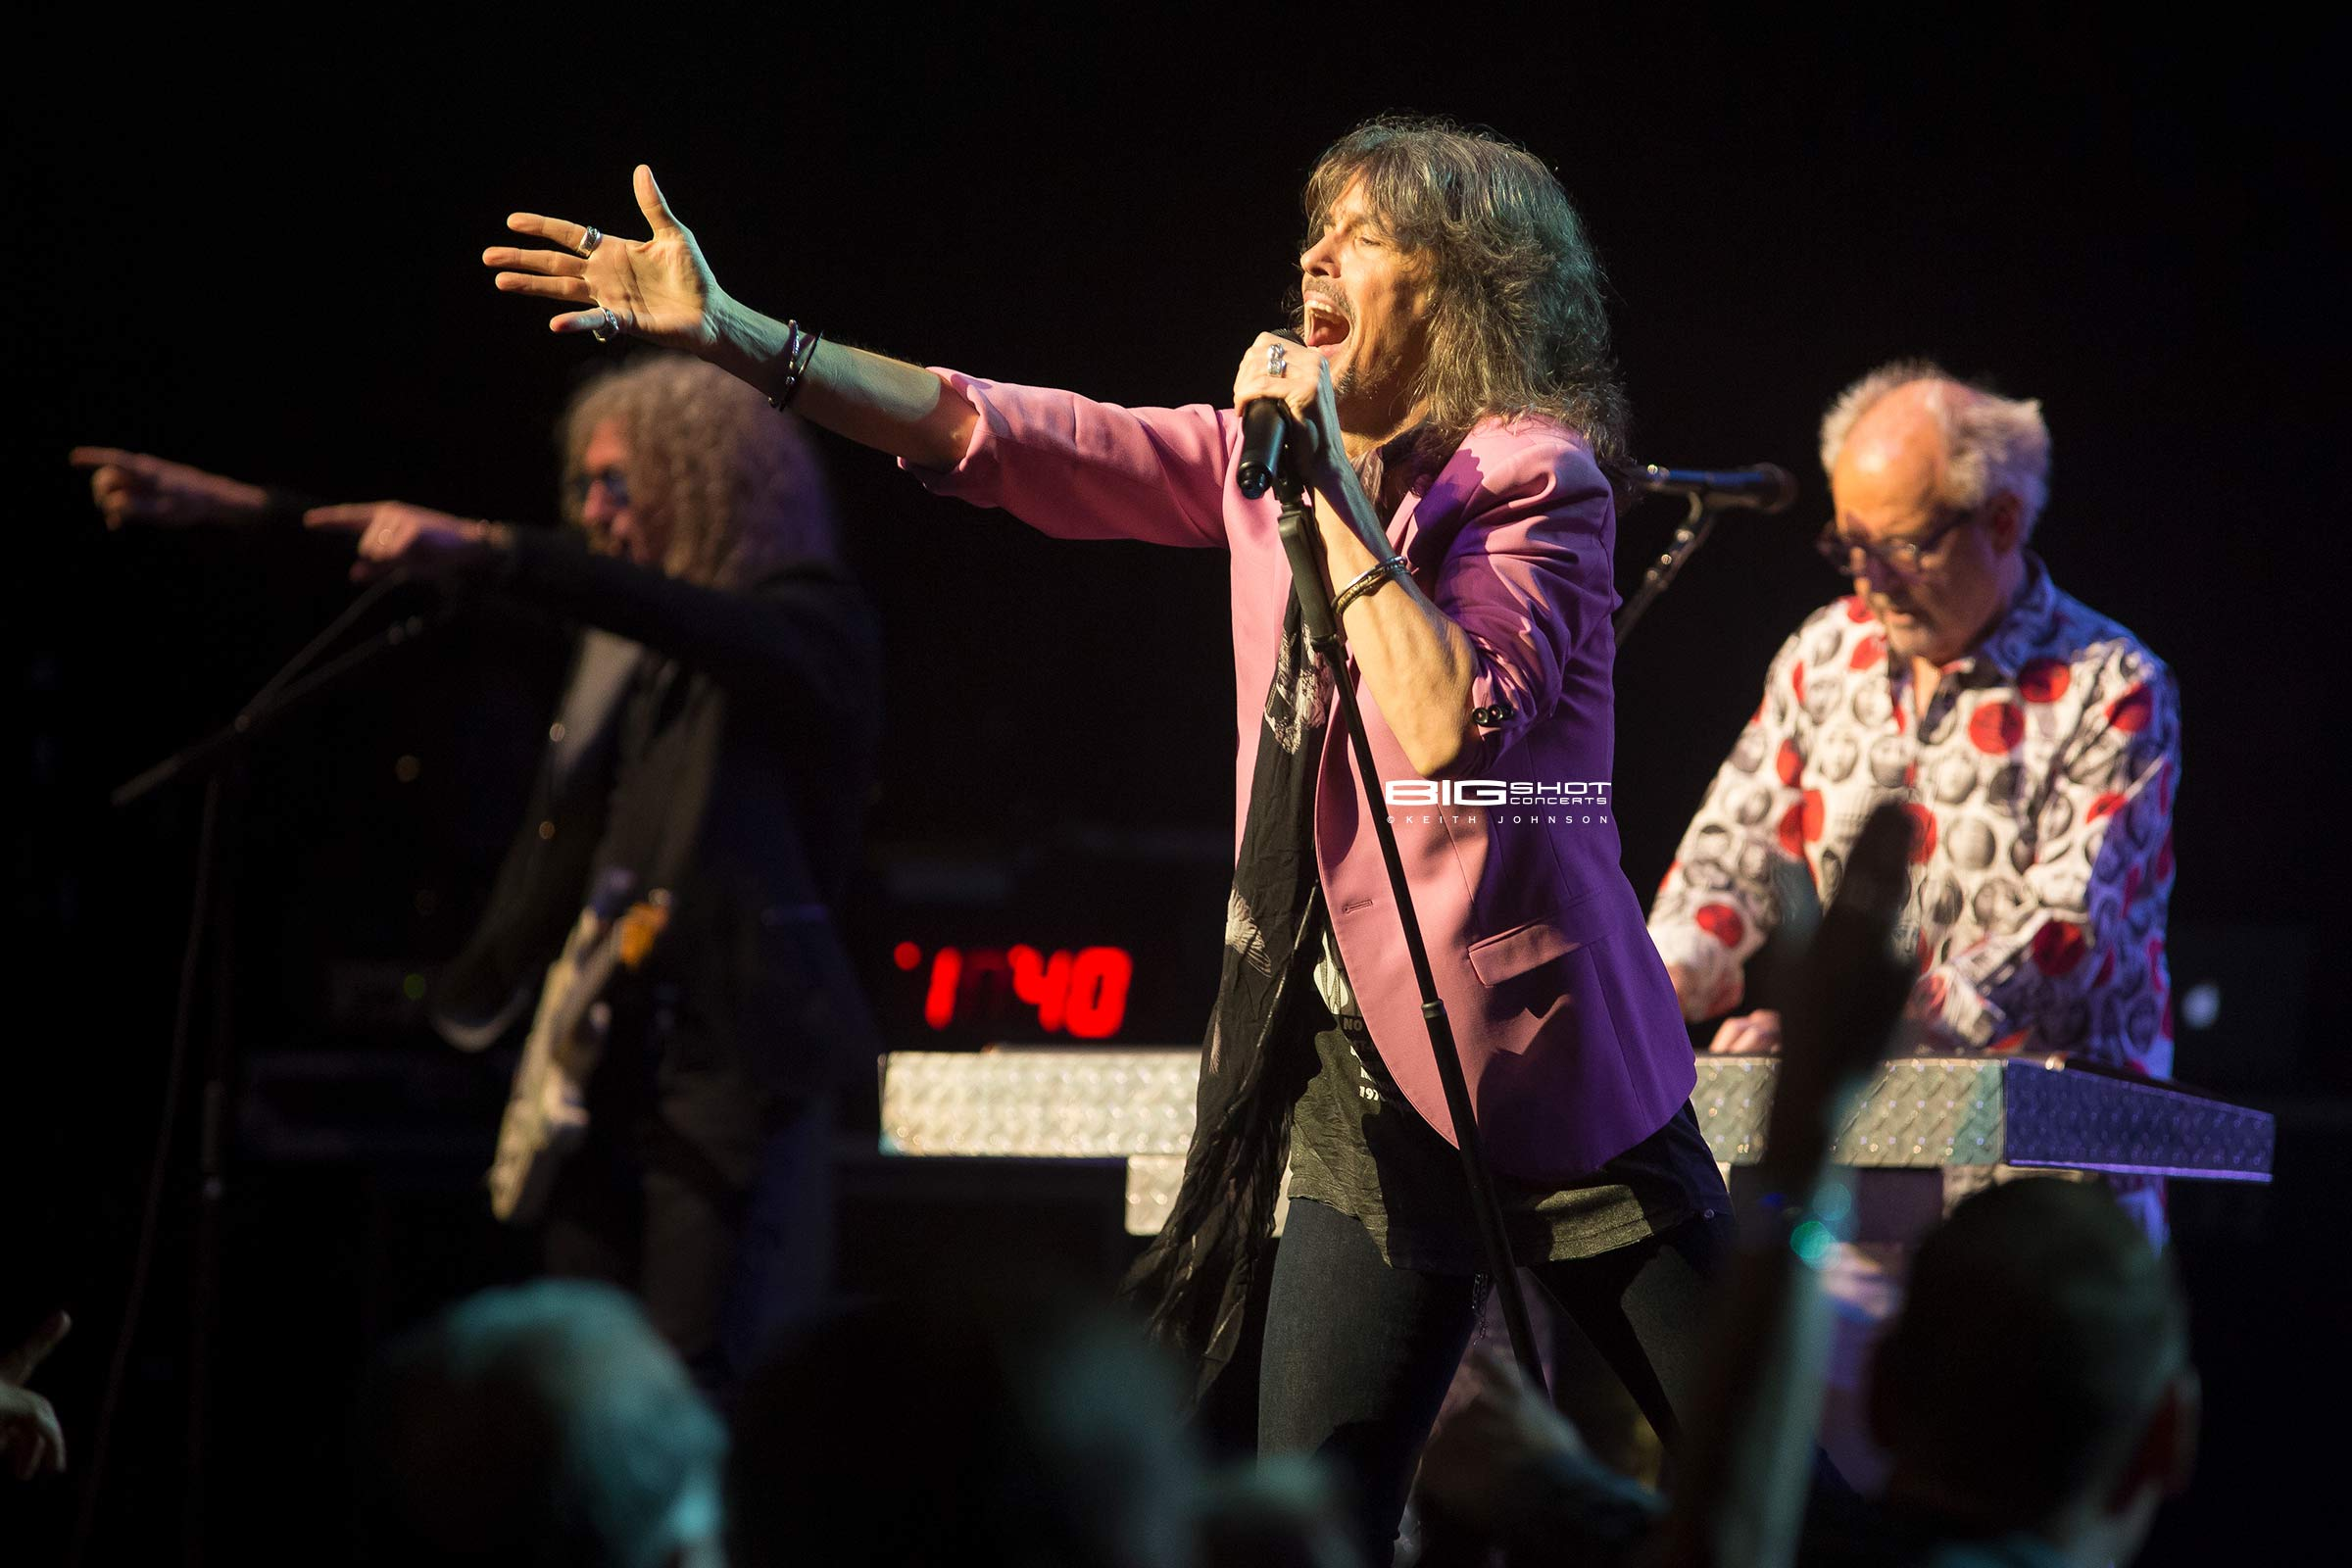 Foreigner Rock Orchestra entertains the fans